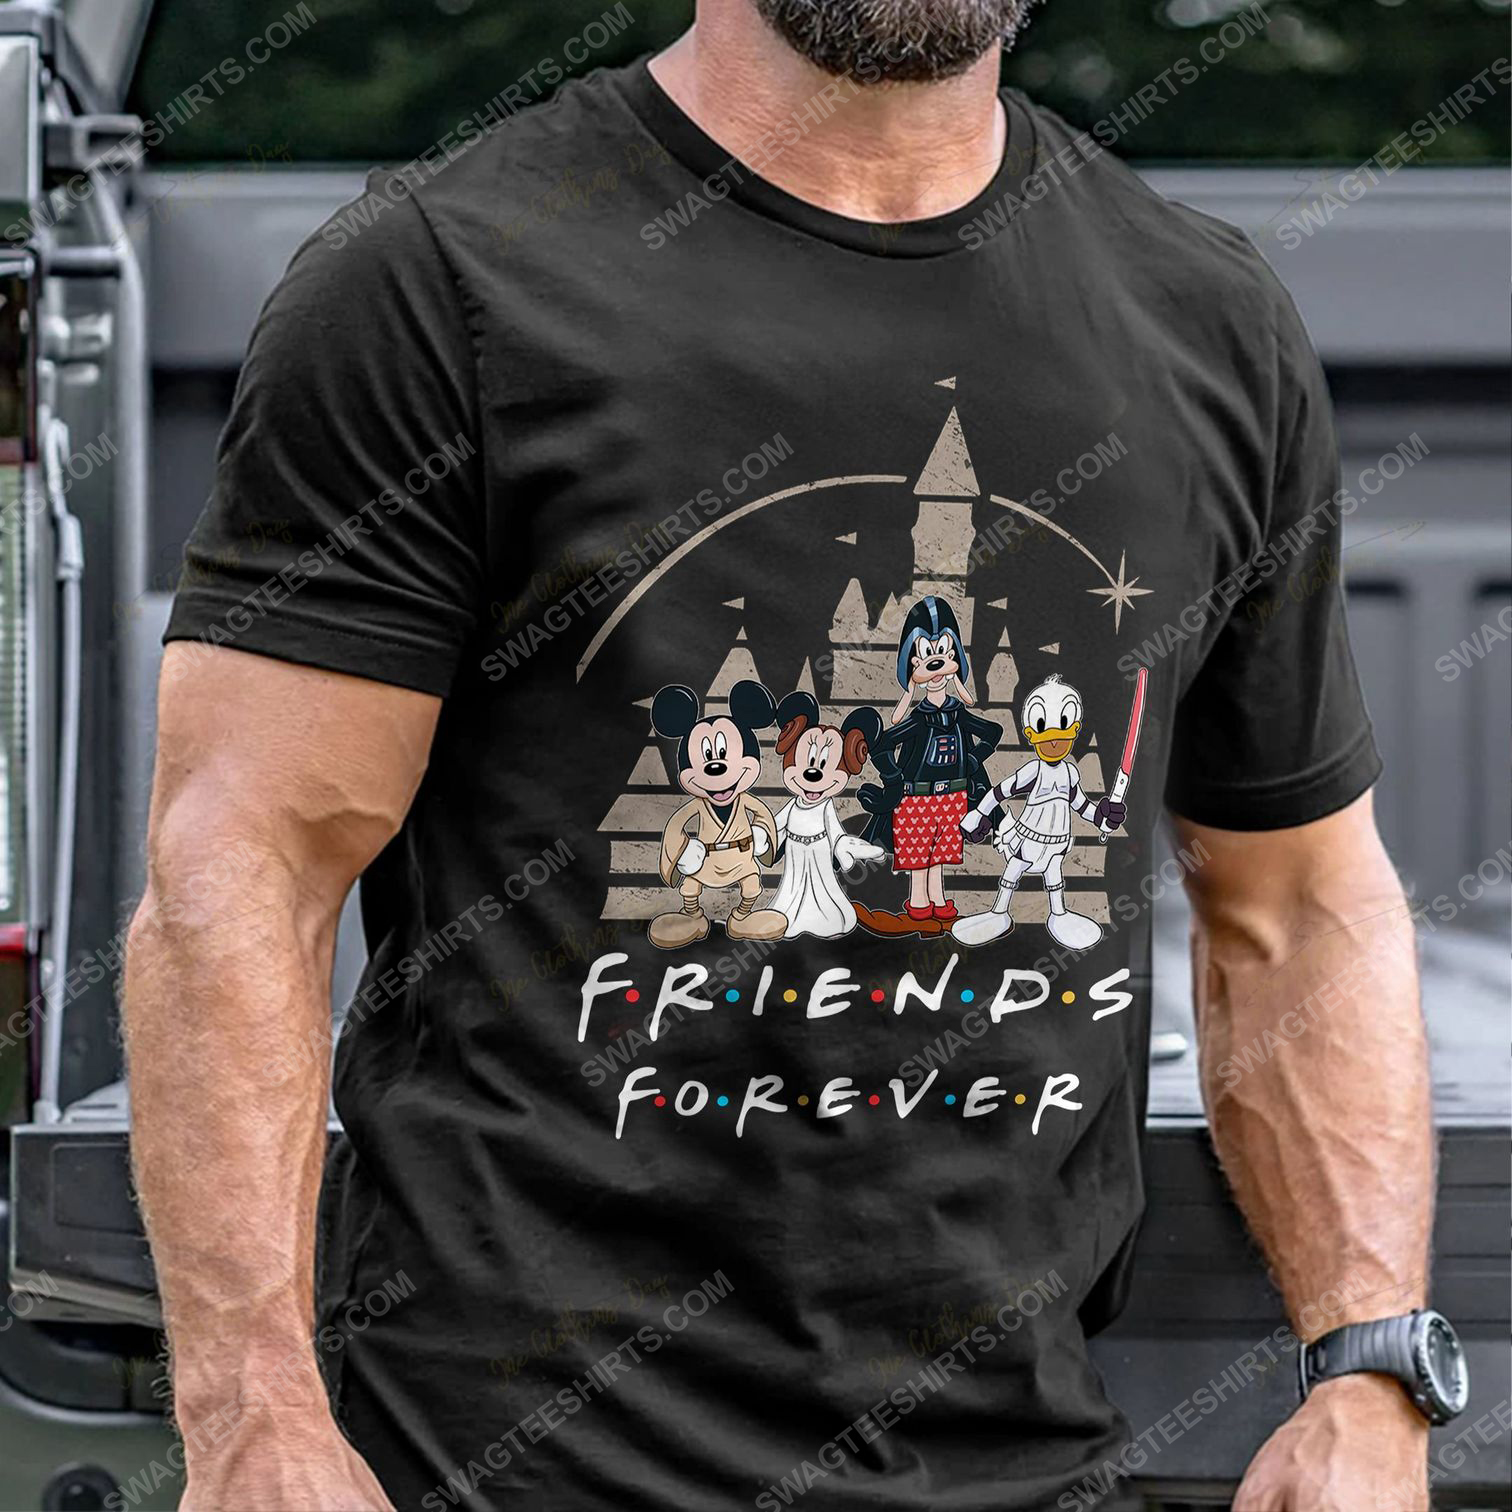 Friends tv show mickey mouse and friends shirt 5(1)